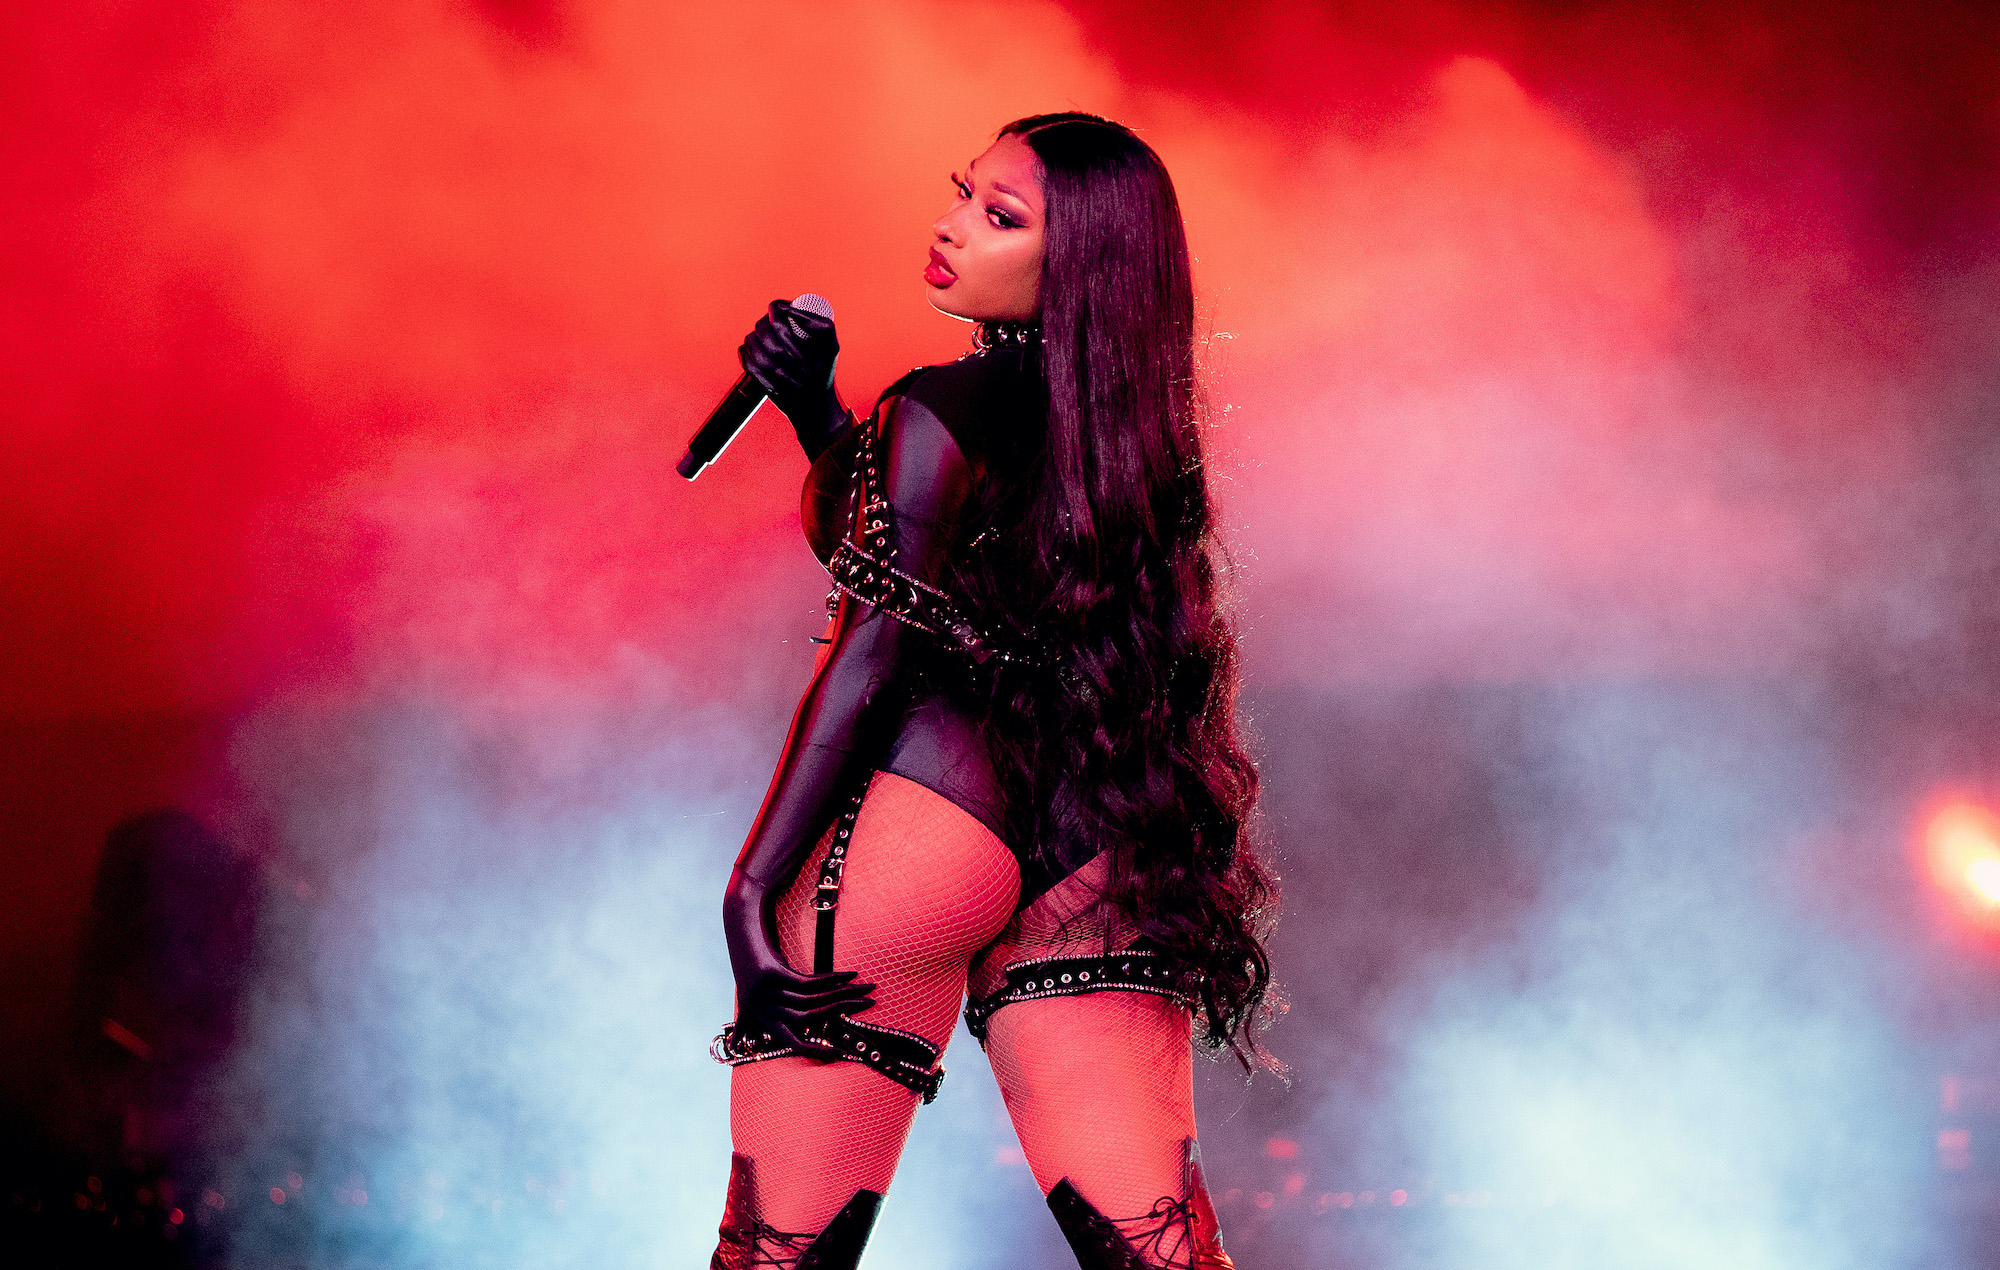 HustleTV.tv HustleTV Megan Thee Stallion Performs new Single Body At AMAs DJ Hustle